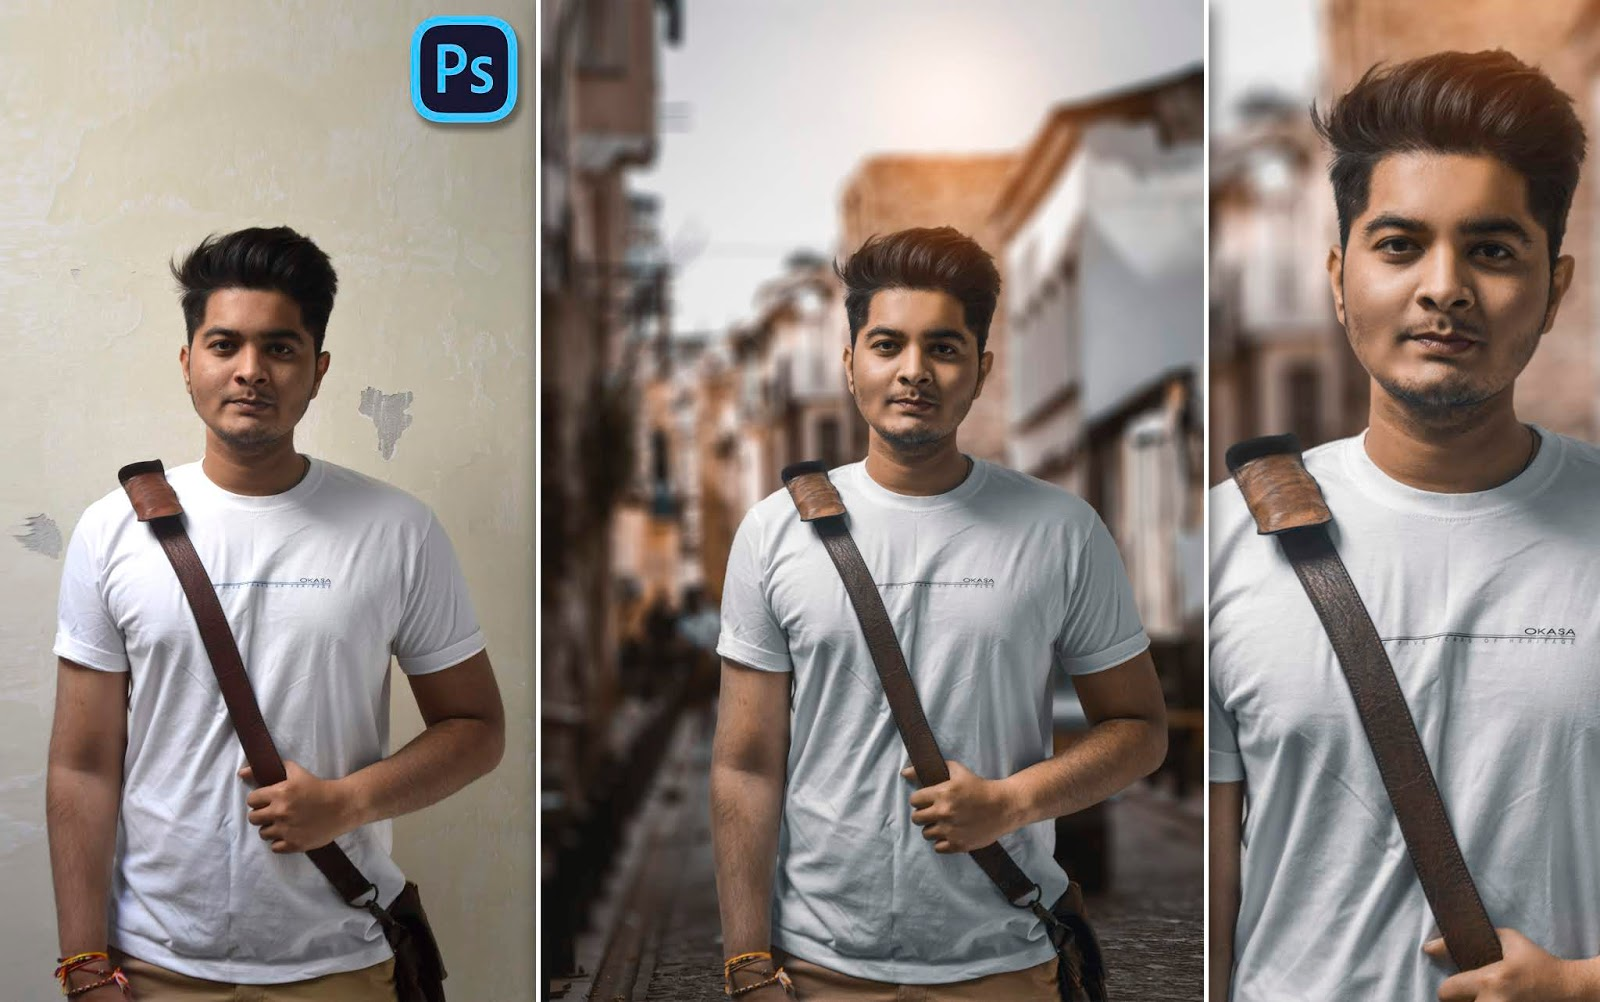 Vijay Mahar Style Gold Skin Retouching & Photo Manipulation in Photoshop | How to Edit Photos Like Vijay Mahar